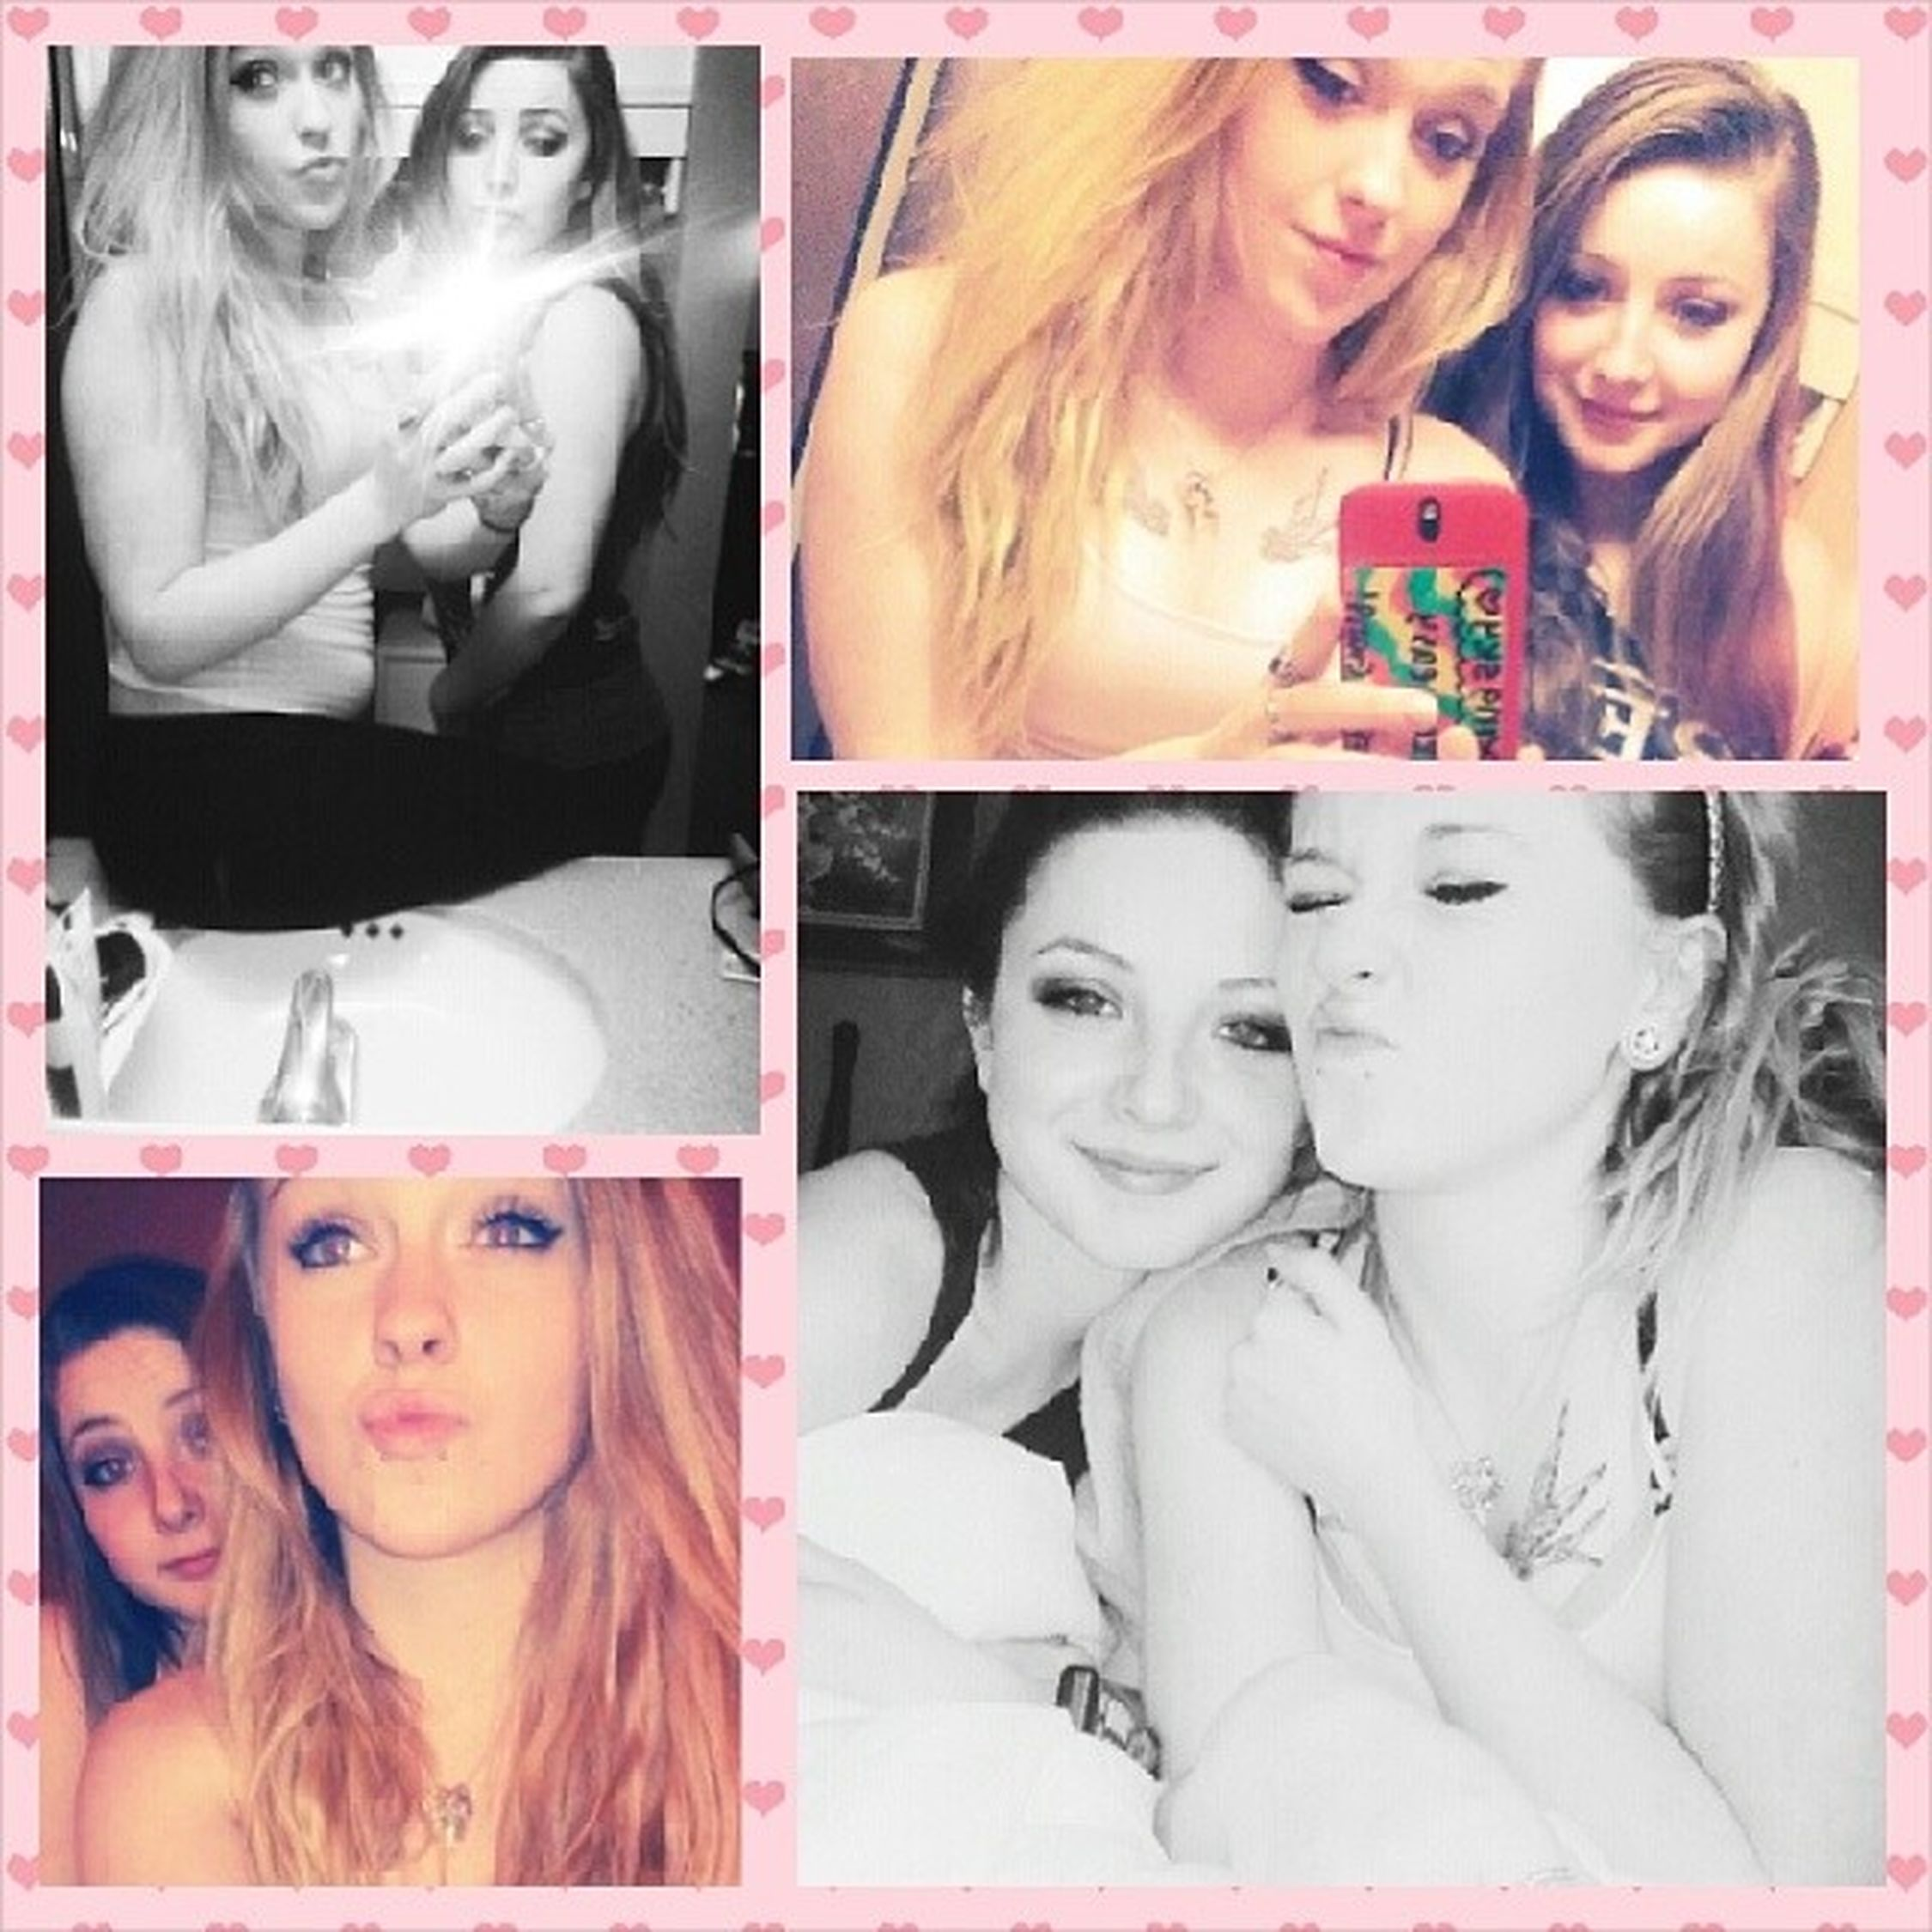 WCW Babess Babygirl Bestfriend rideordie wife beauty family forever i love you <33